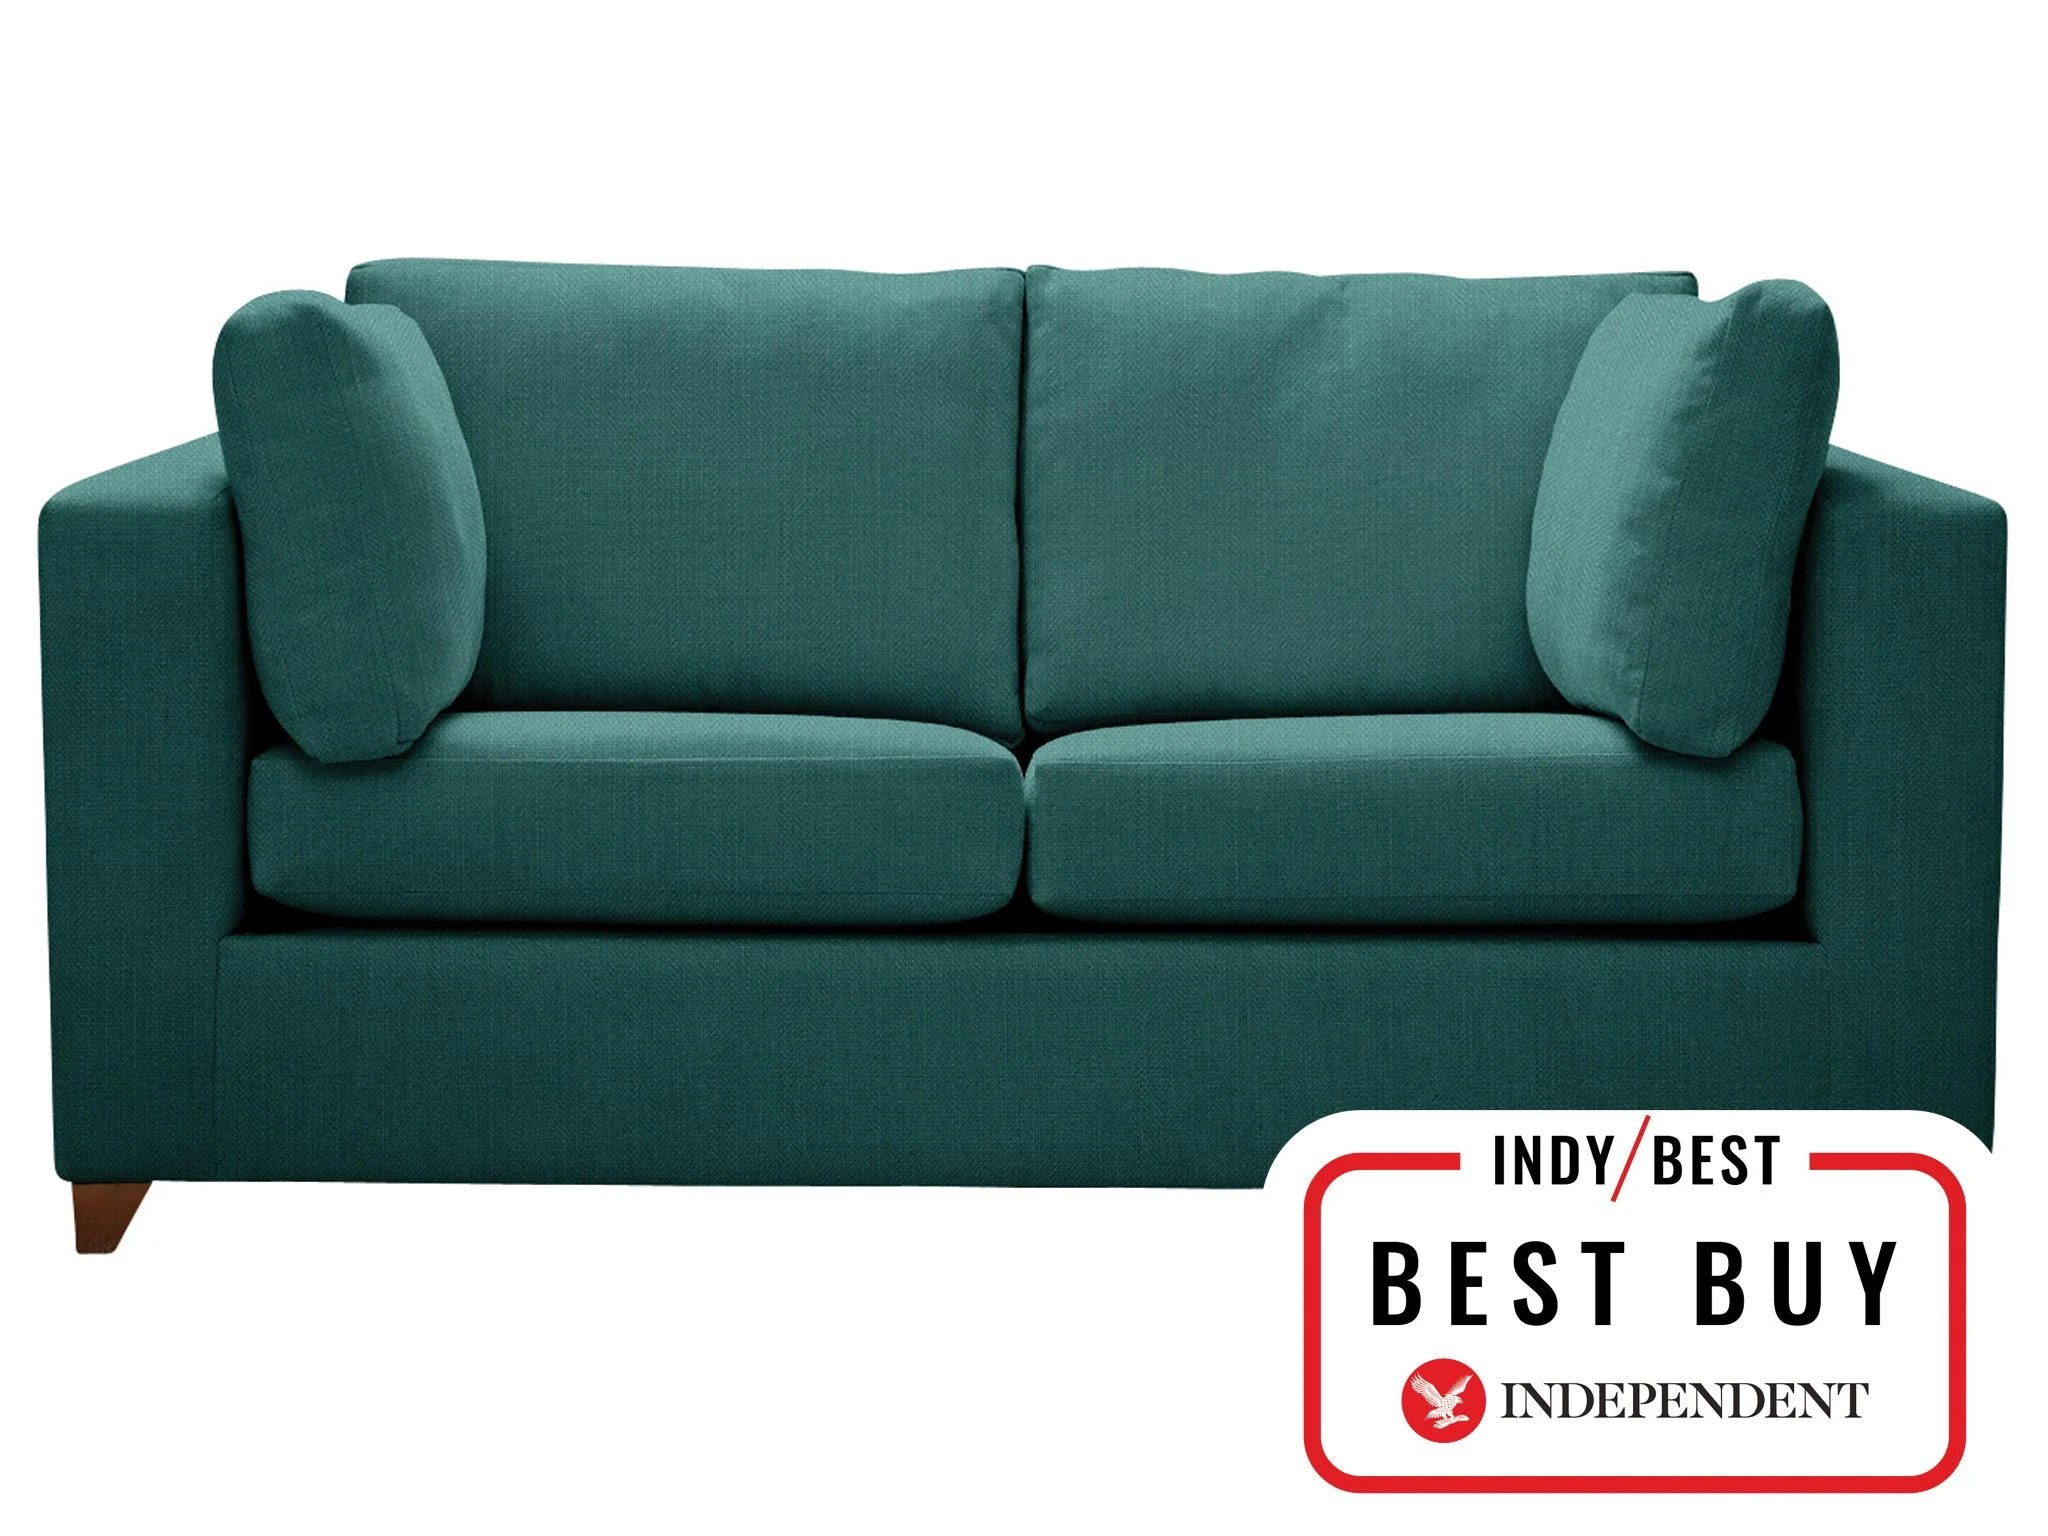 what is the best sofa bed ed slipcovers 12 beds independent if you re looking for a to fit discreetly with your other furniture upmarket somerton comes in range of 240 fabrics